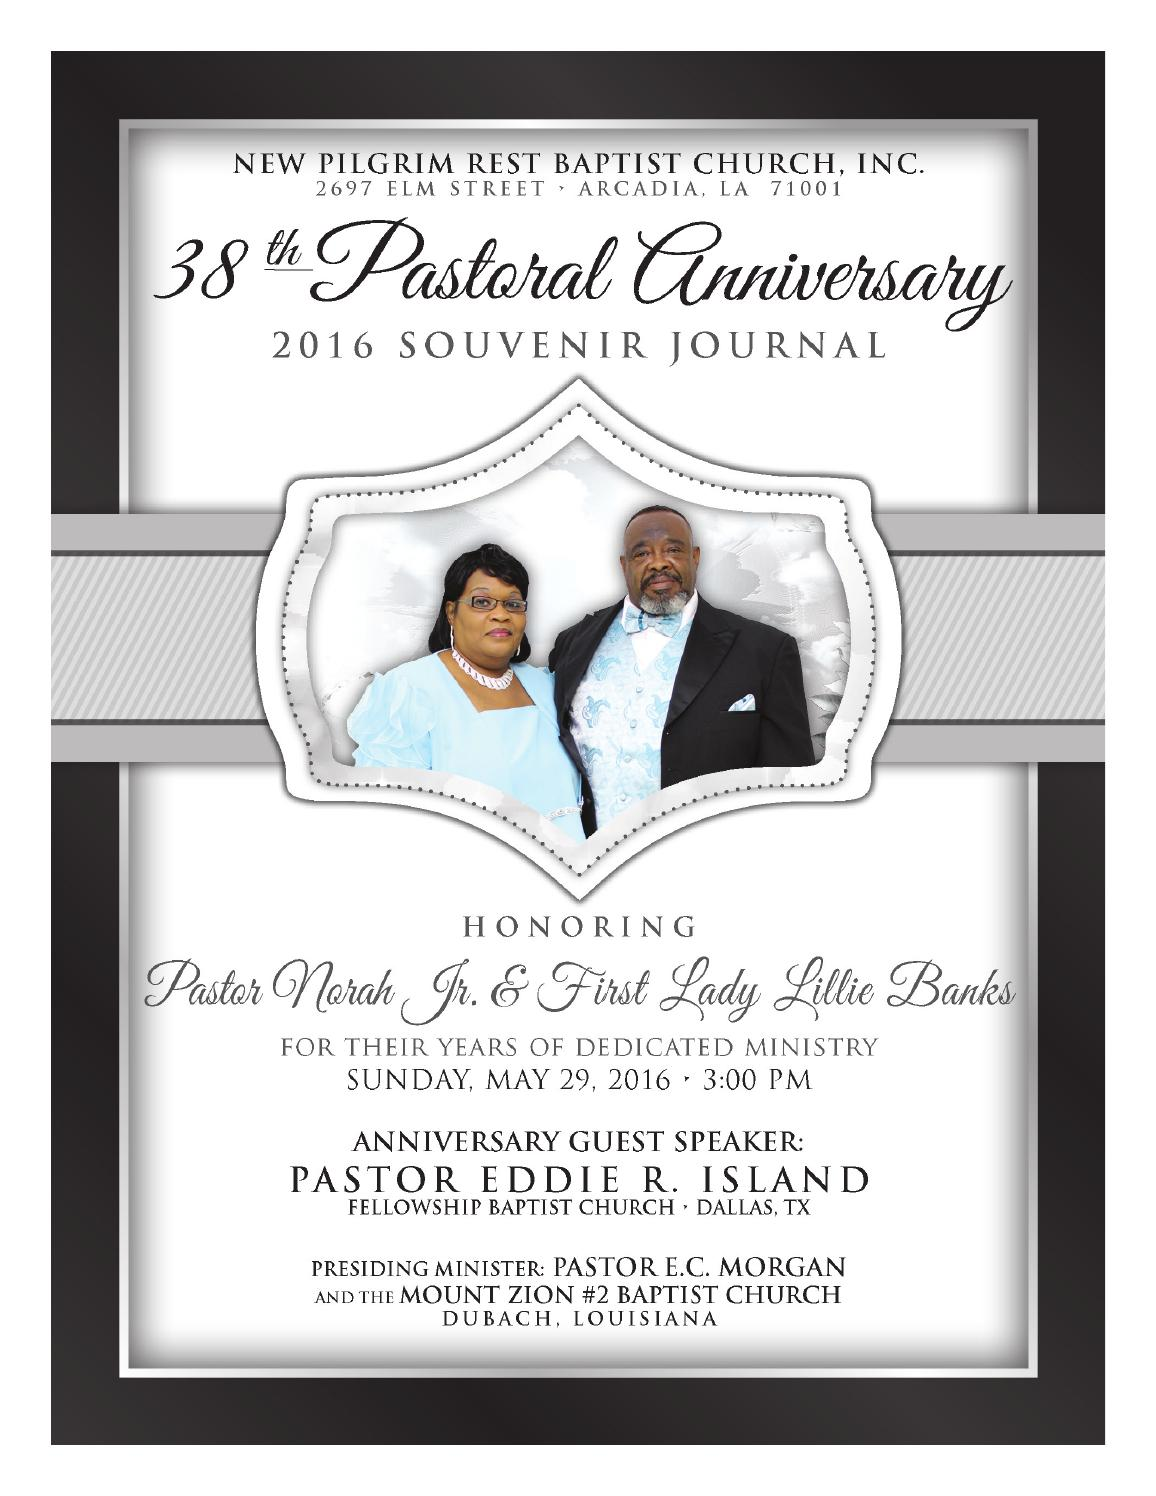 Pastor and wife 4th appreciation service by new st paul baptist pastor norah jr first lady lillie banks 38th pastoral anniversary souvenir journal stopboris Image collections